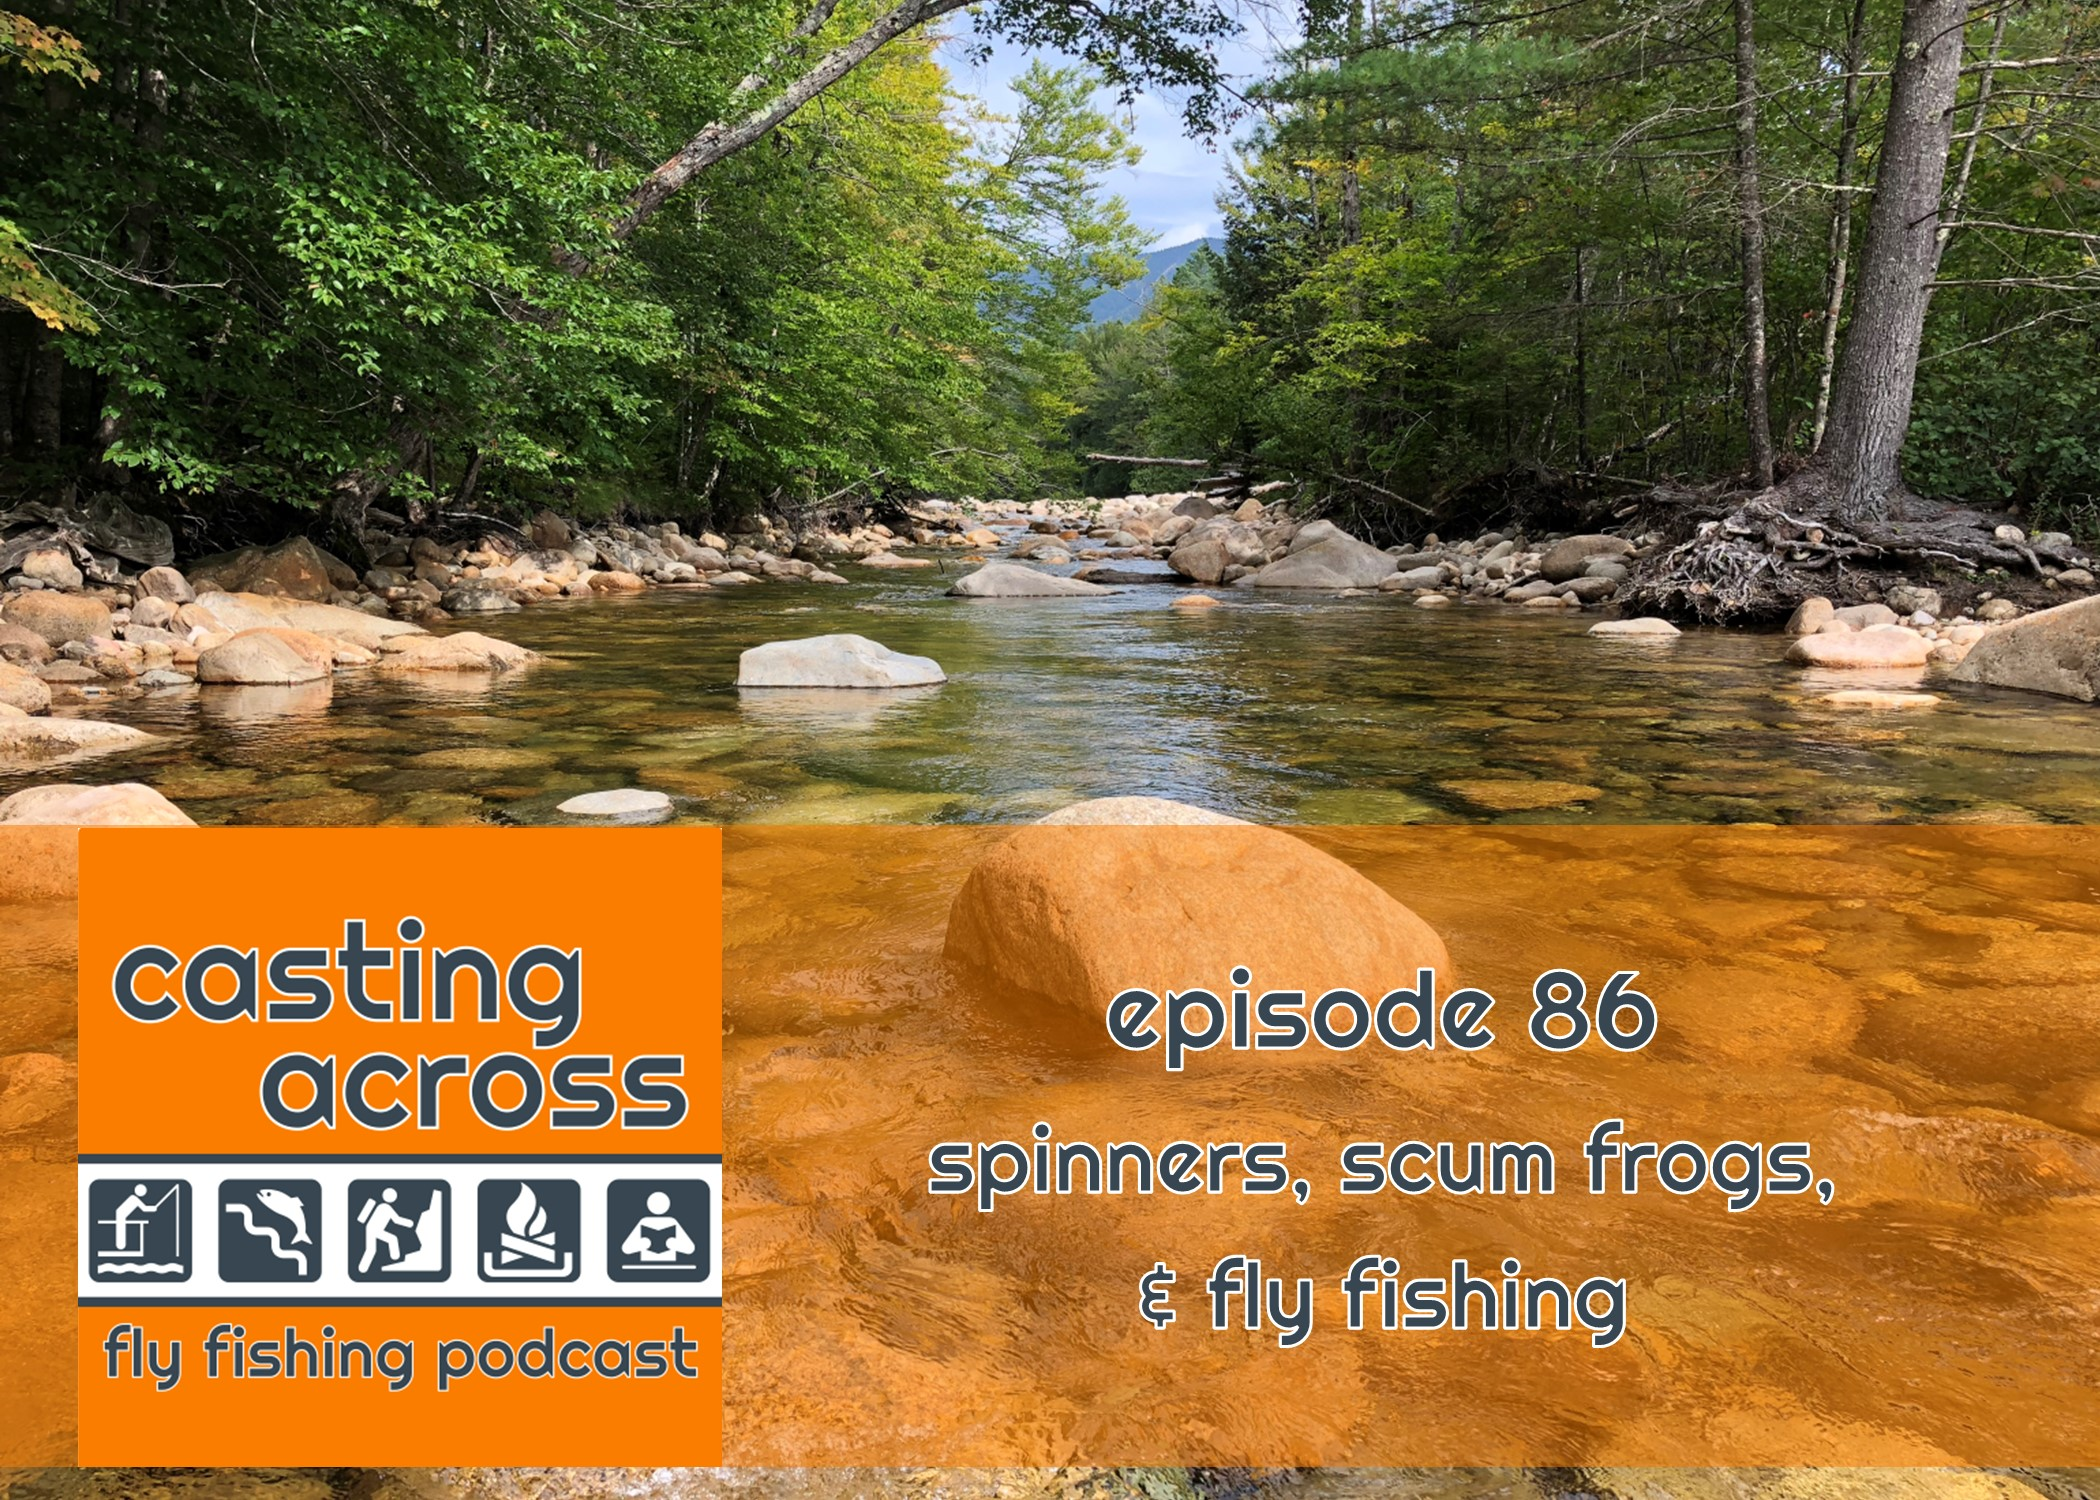 Podcast Ep. 86: Spinners, Scum Frogs, & Fly Fishing - Casting Across